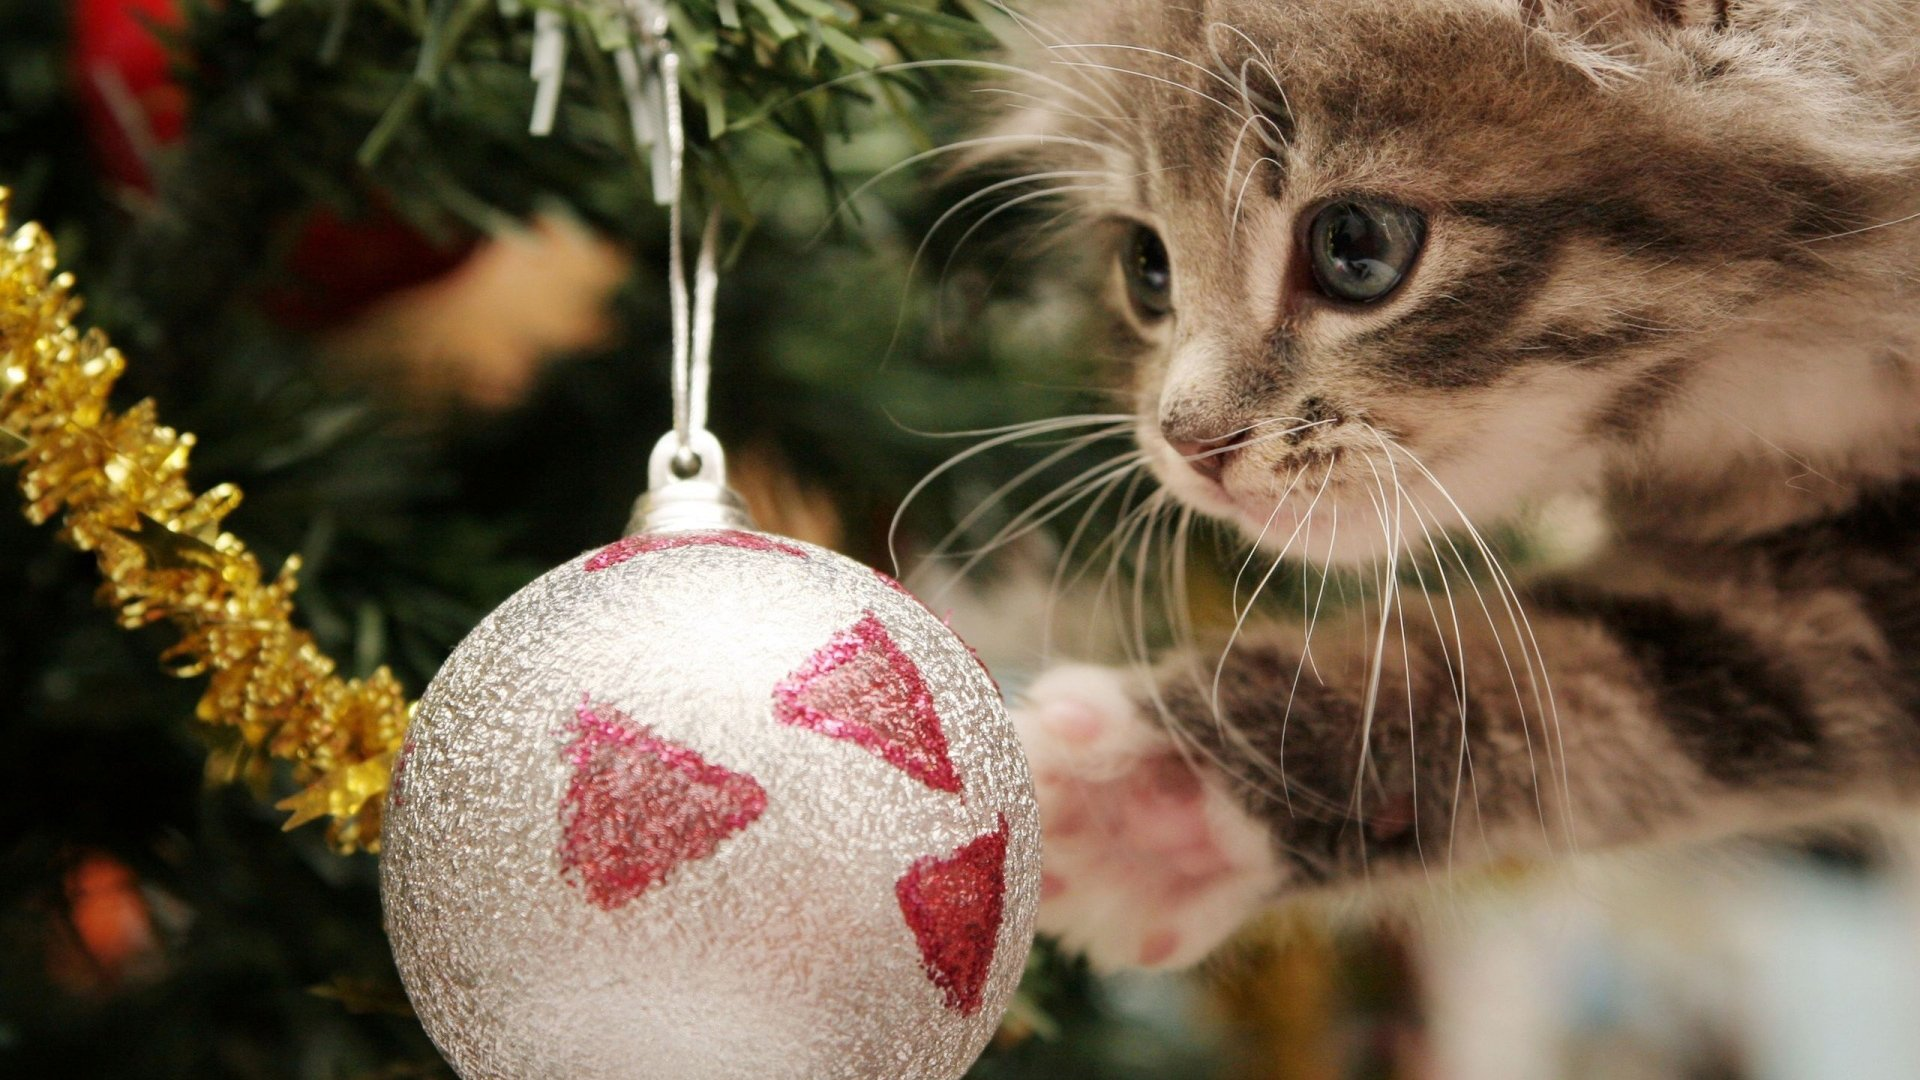 Super Cute Christmas Cat Full HD wallpaper Christmas Ball 1080p 1920x1080